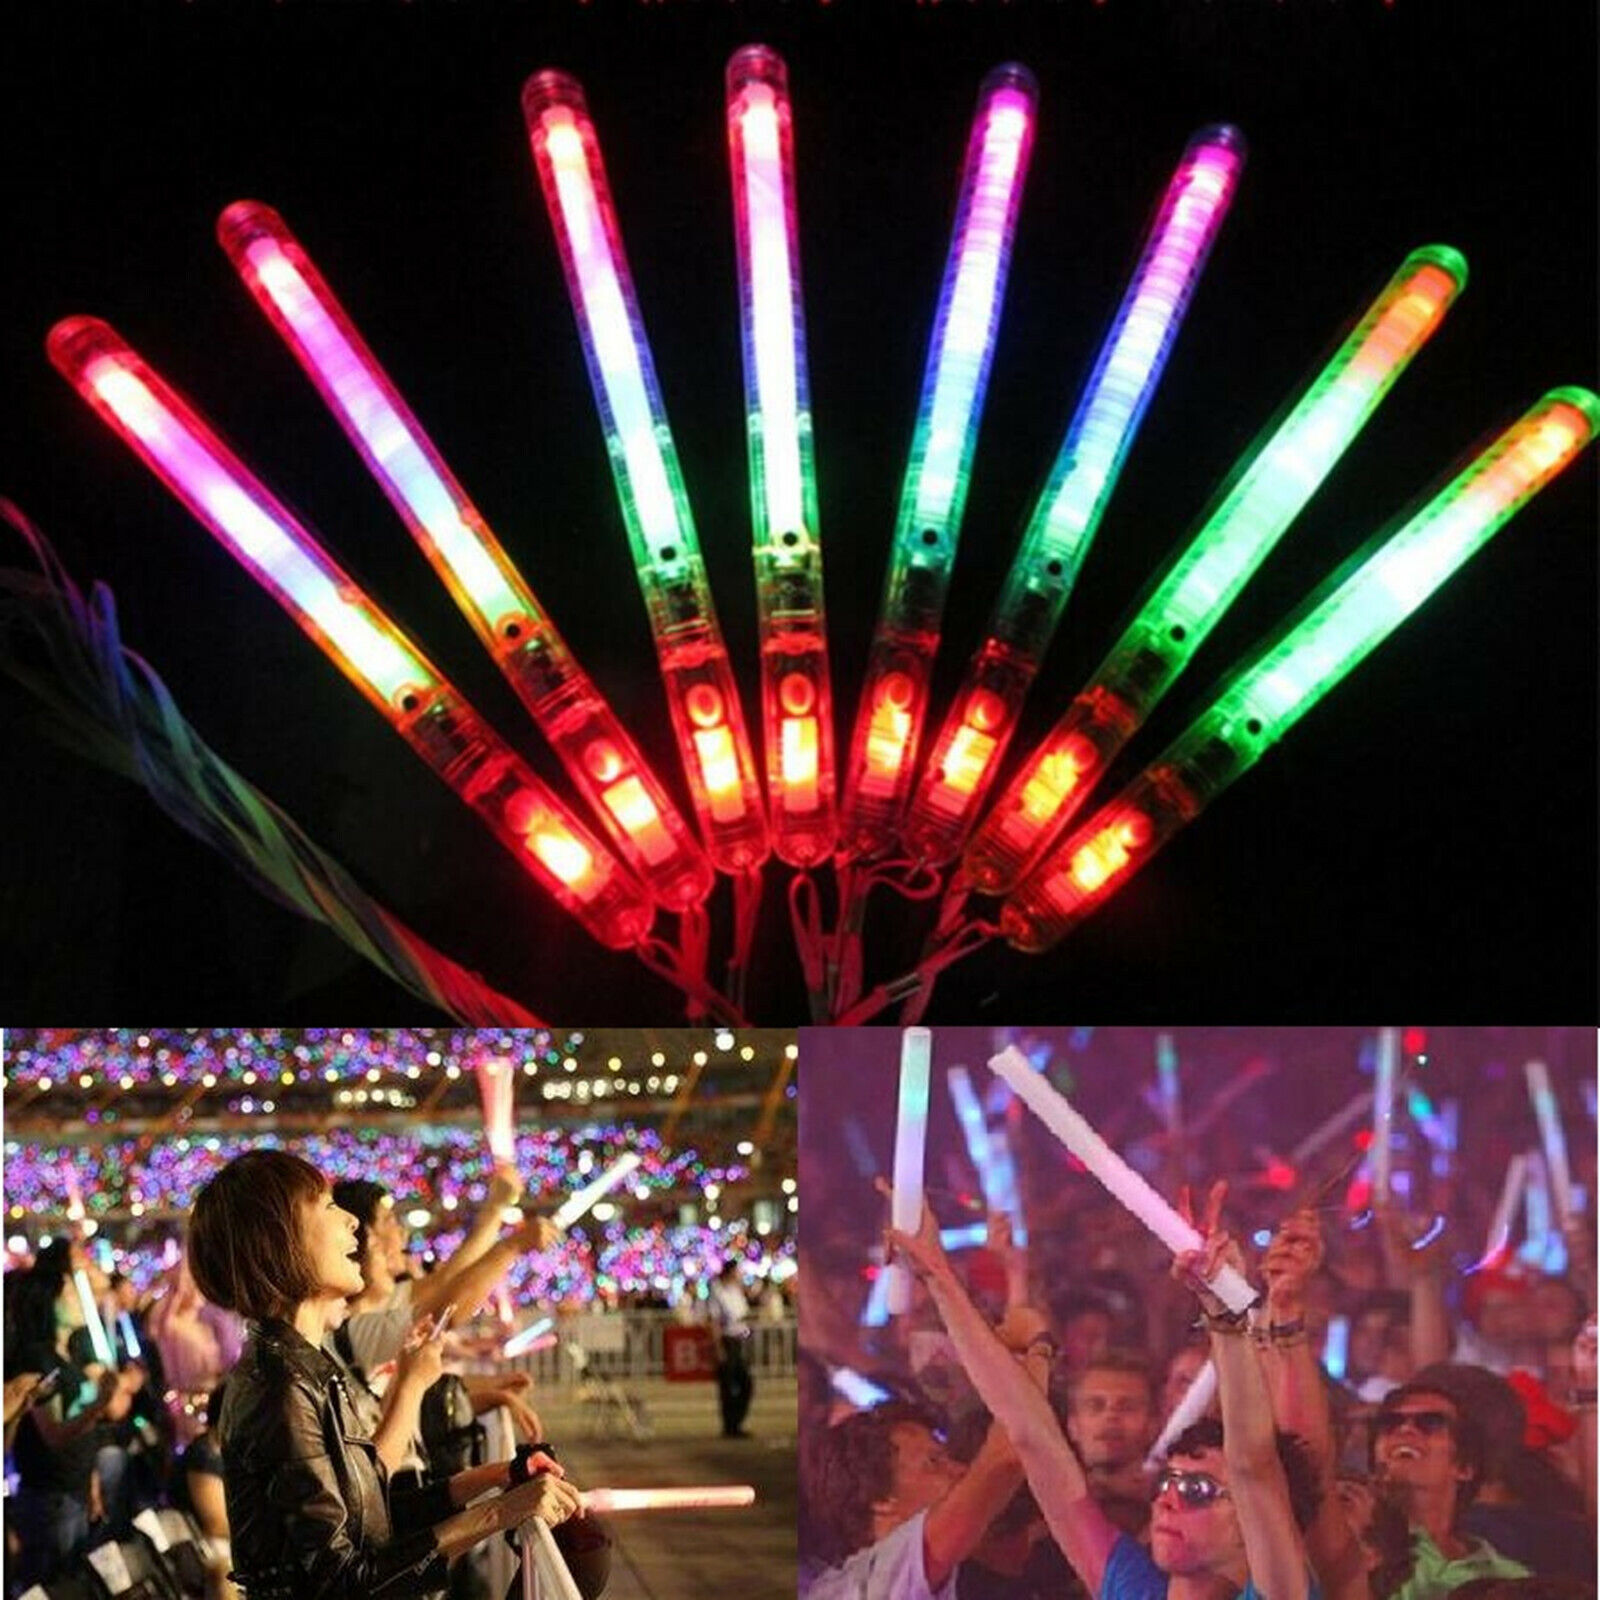 Led Glow Sticks Details About 30pcs Led Glow Flashing Wand Rainbow Light Up Sticks Party Concert Prom Blinking